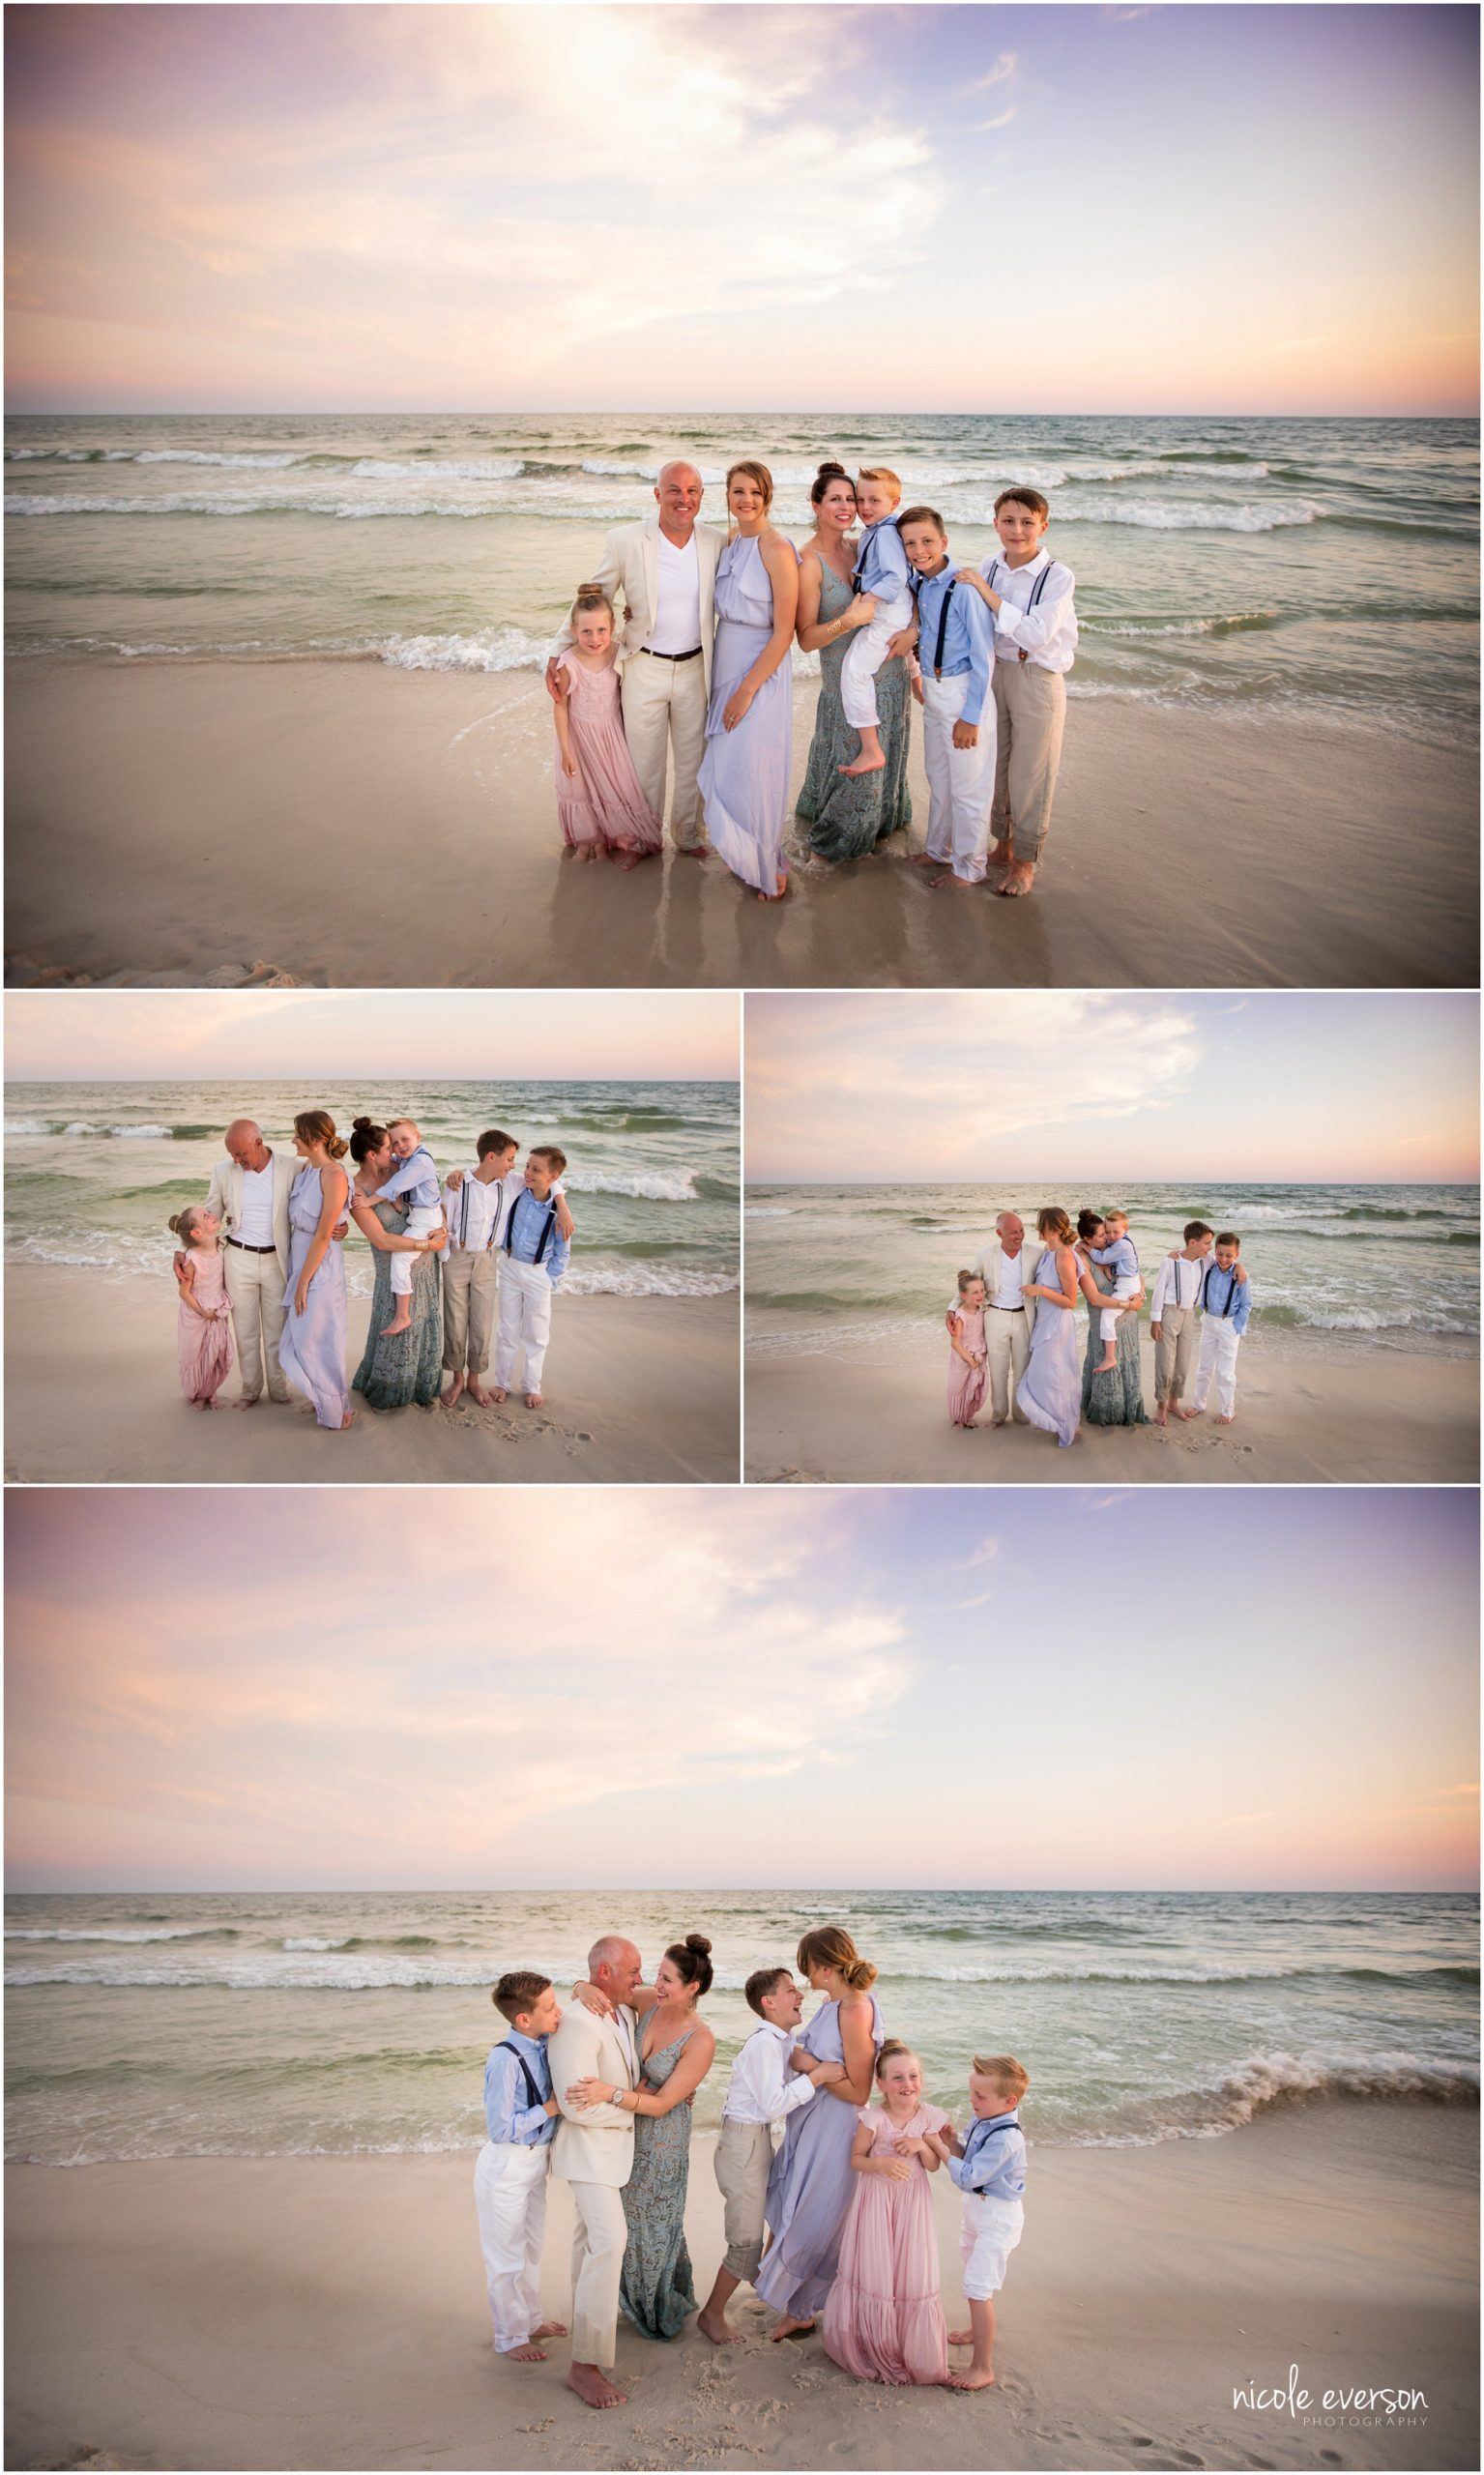 Rosemary Beach photographers near me. Rosemary Beach Pictures. Laughing family in front of the ocean on Rosemary Beach. Nicole Everson Photography.